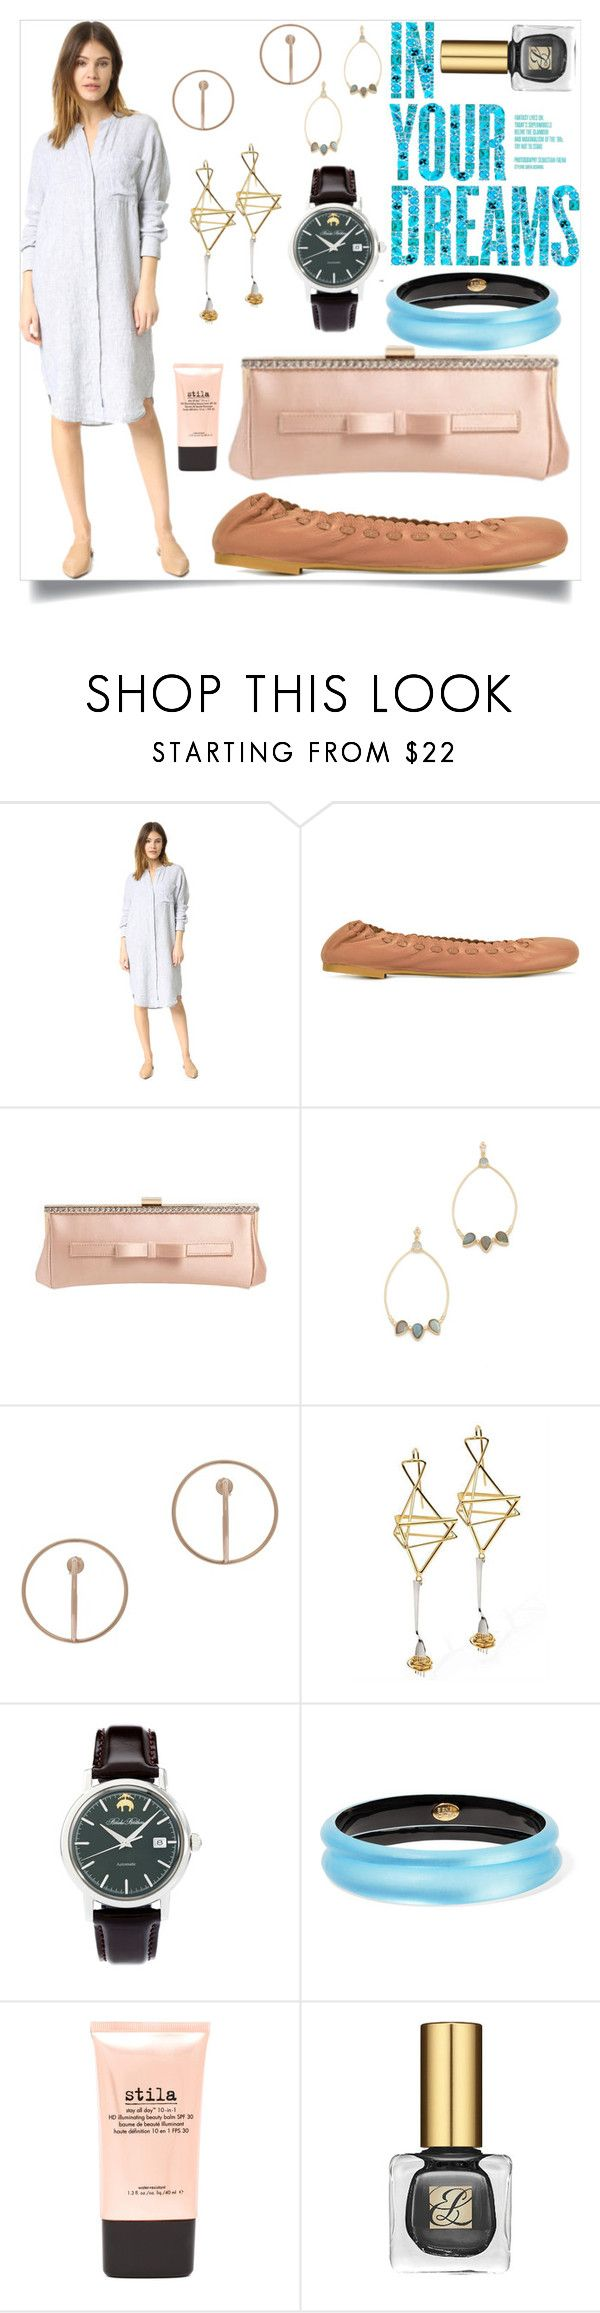 """In your dreams"" by camry-brynn ❤ liked on Polyvore featuring James Perse, See by Chloé, RED Valentino, Atelier Mon, Charlotte Chesnais, Futuro Remoto, Brooks Brothers, Alexis Bittar and Stila"